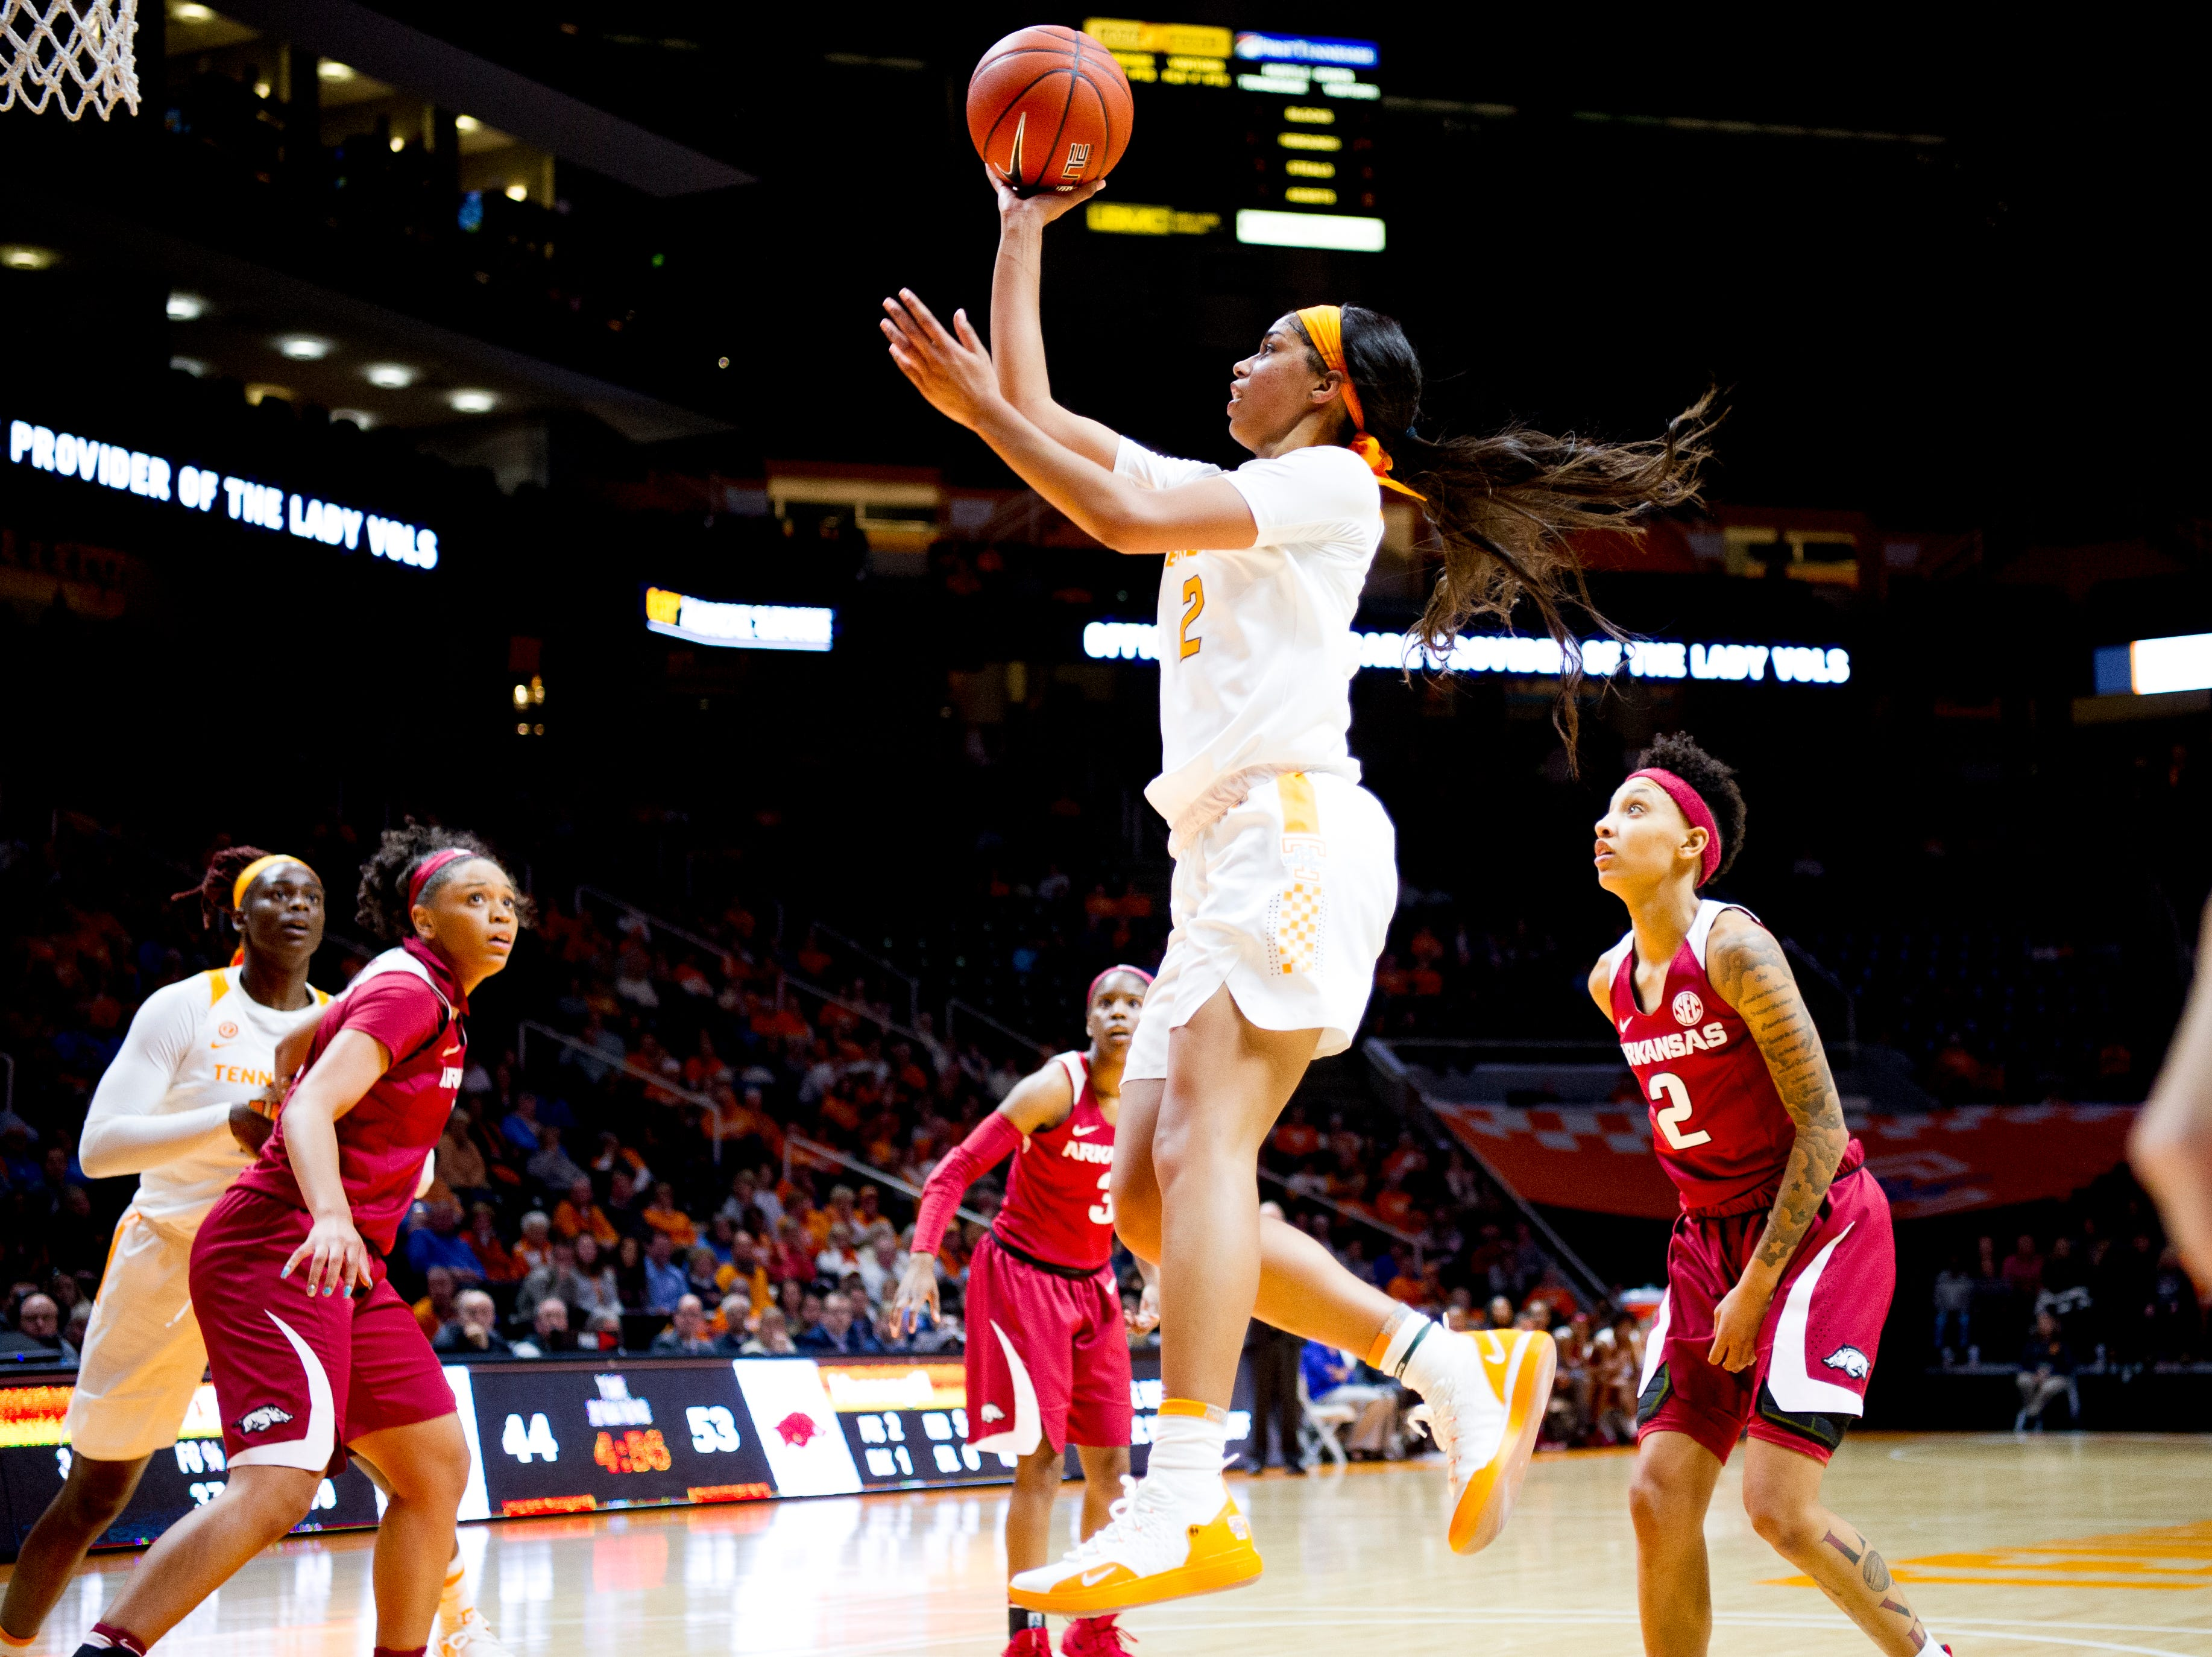 Tennessee guard Evina Westbrook (2) goes for a layup during a game between Tennessee and Arkansas at Thompson-Boling Arena in Knoxville, Tennessee on Monday, January 21, 2019.